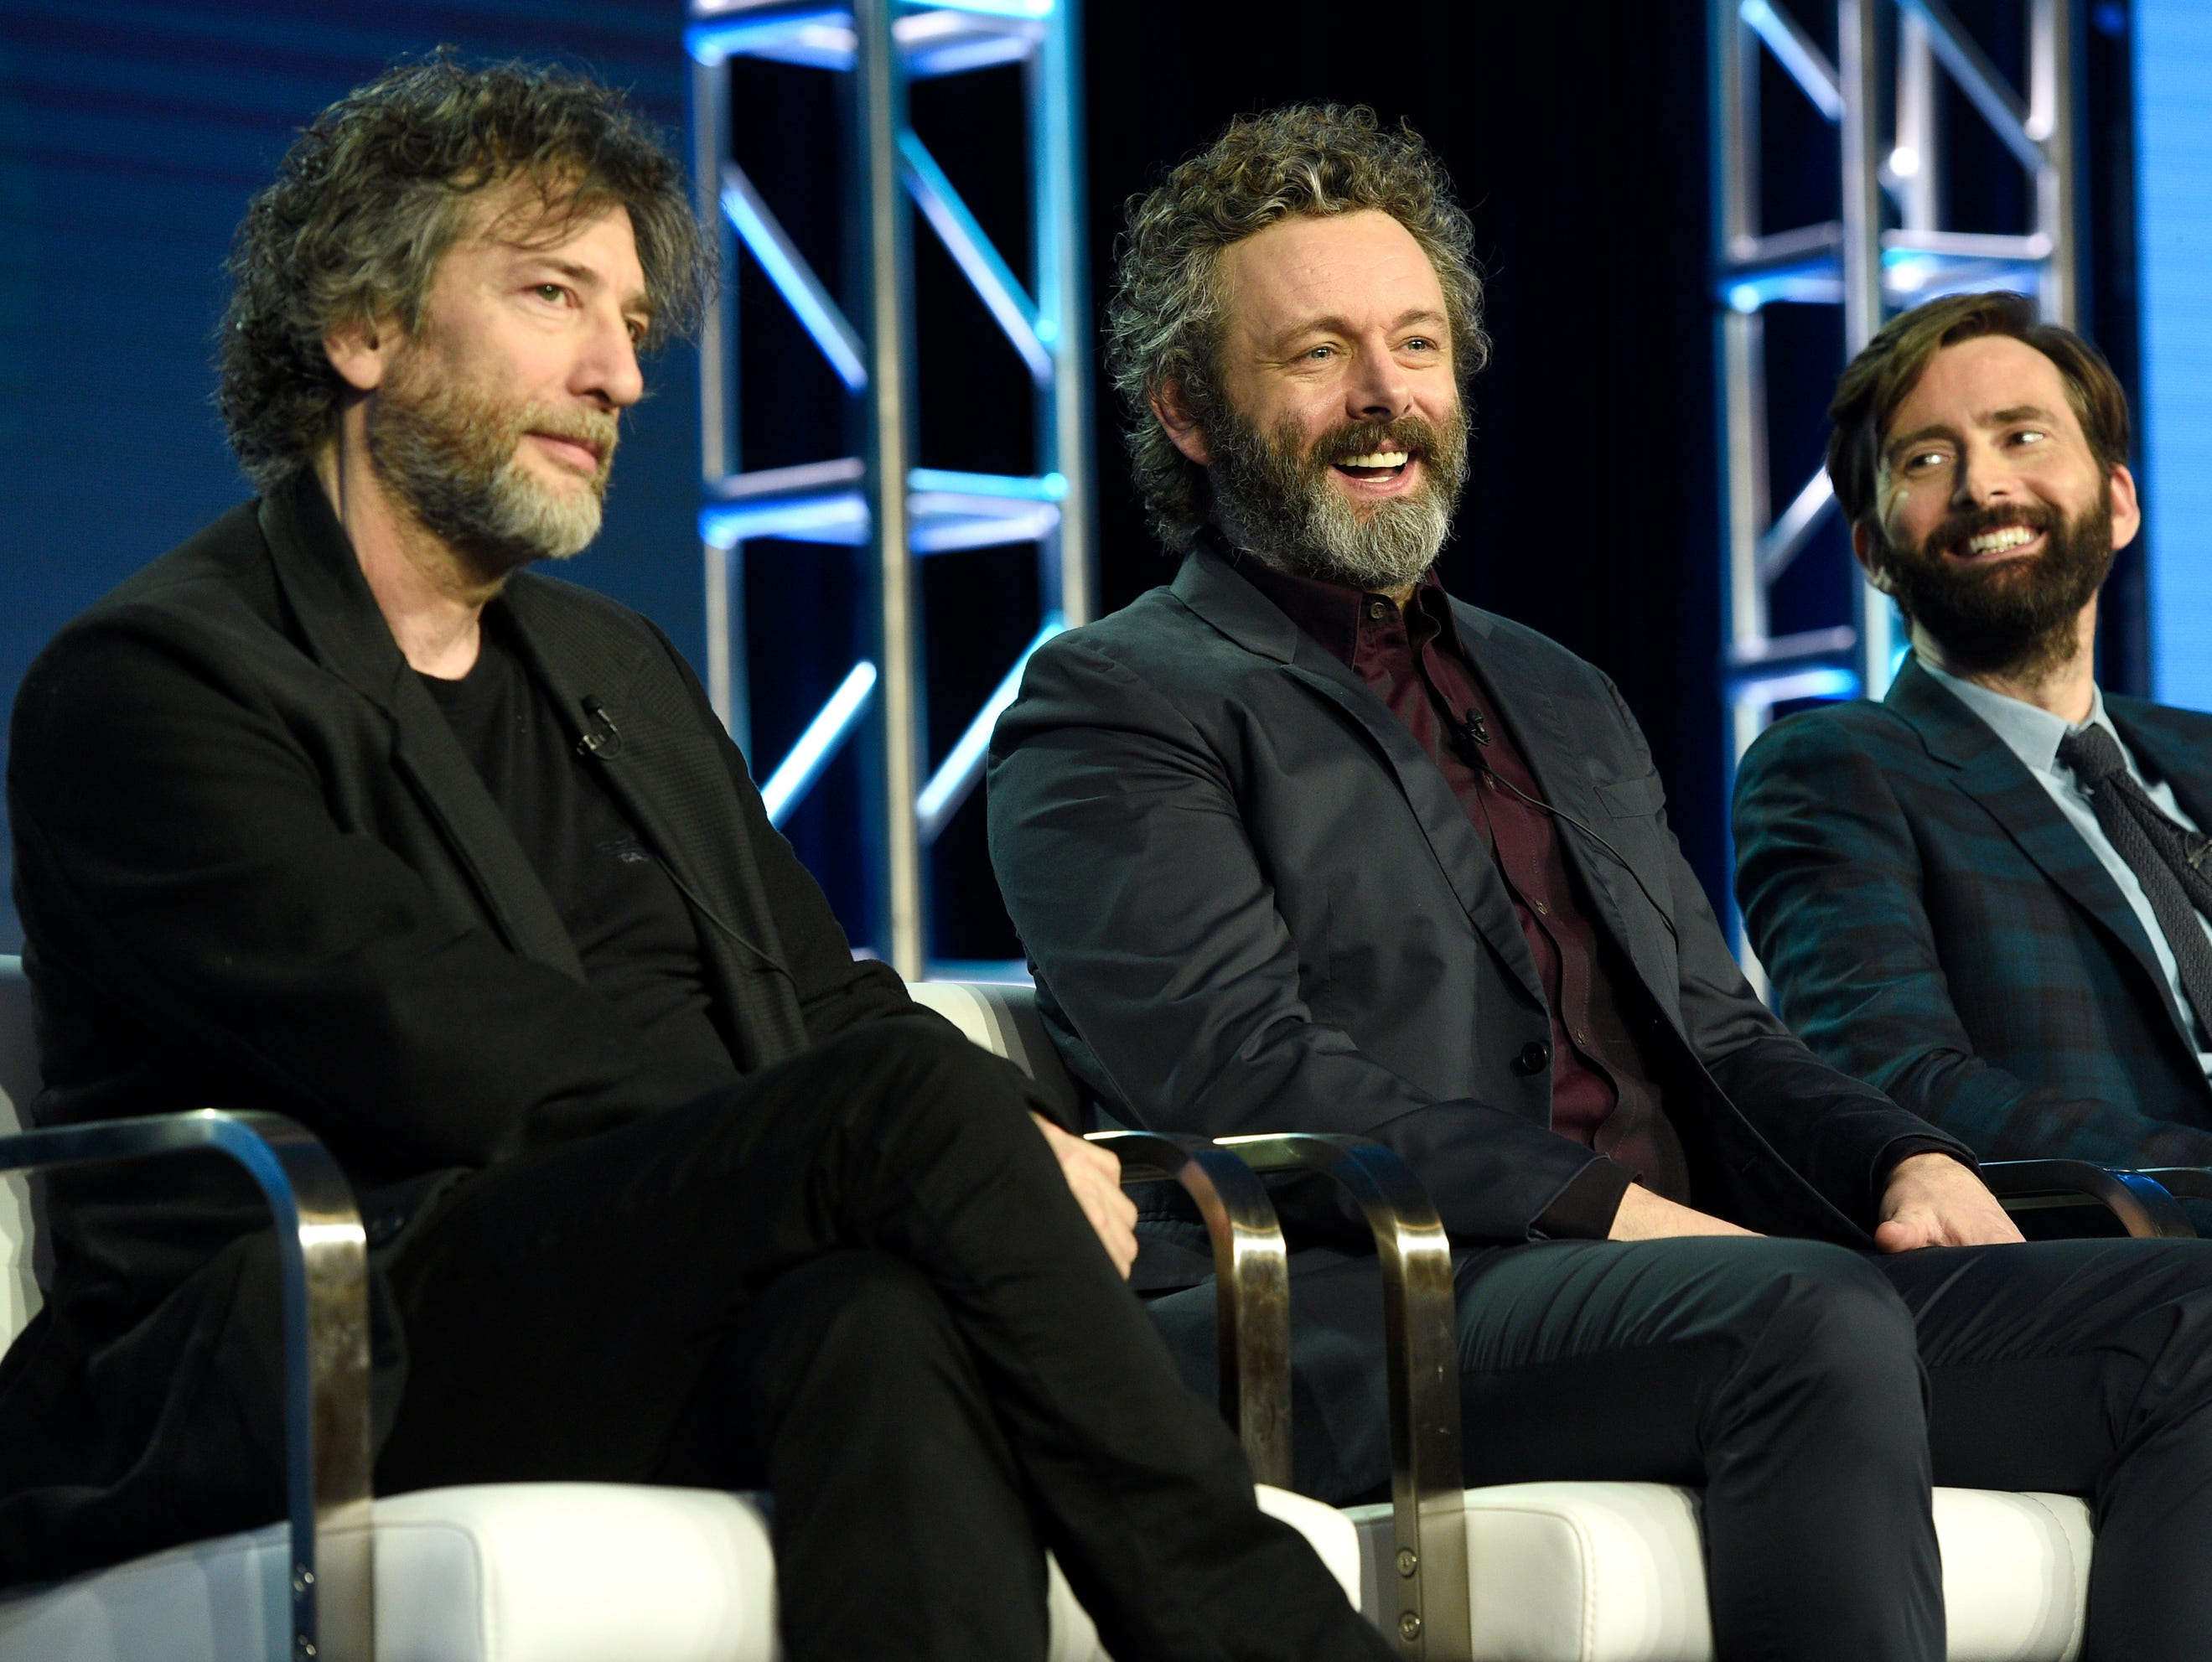 """Executive producer/showrunner Neil Gaiman and actors Michael Sheen and David Tennant discuss their new Amazon Prime series """"Good Omens."""""""